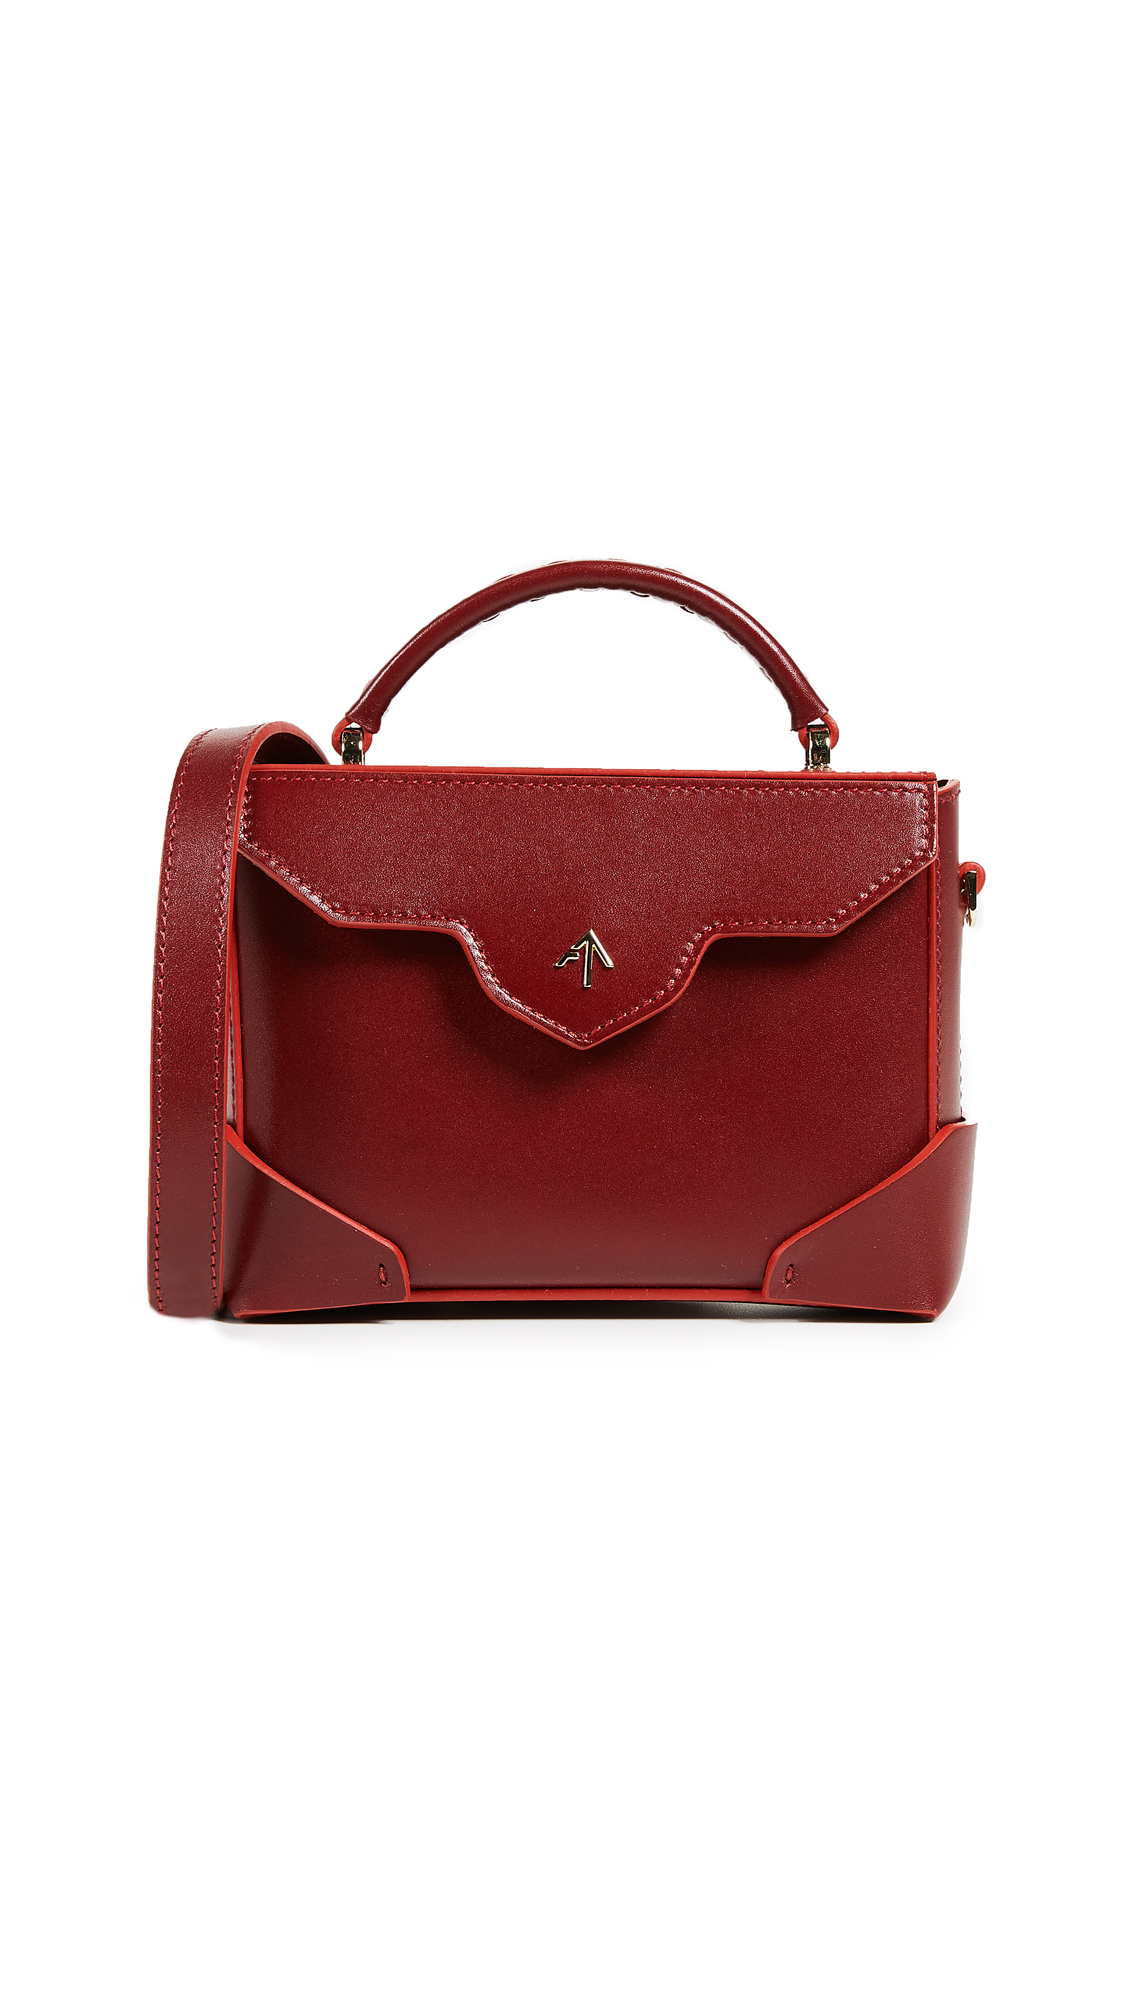 MICRO BOLD EMBOSSED LEATHER SHOULDER BAG WITH CHAIN STRAP